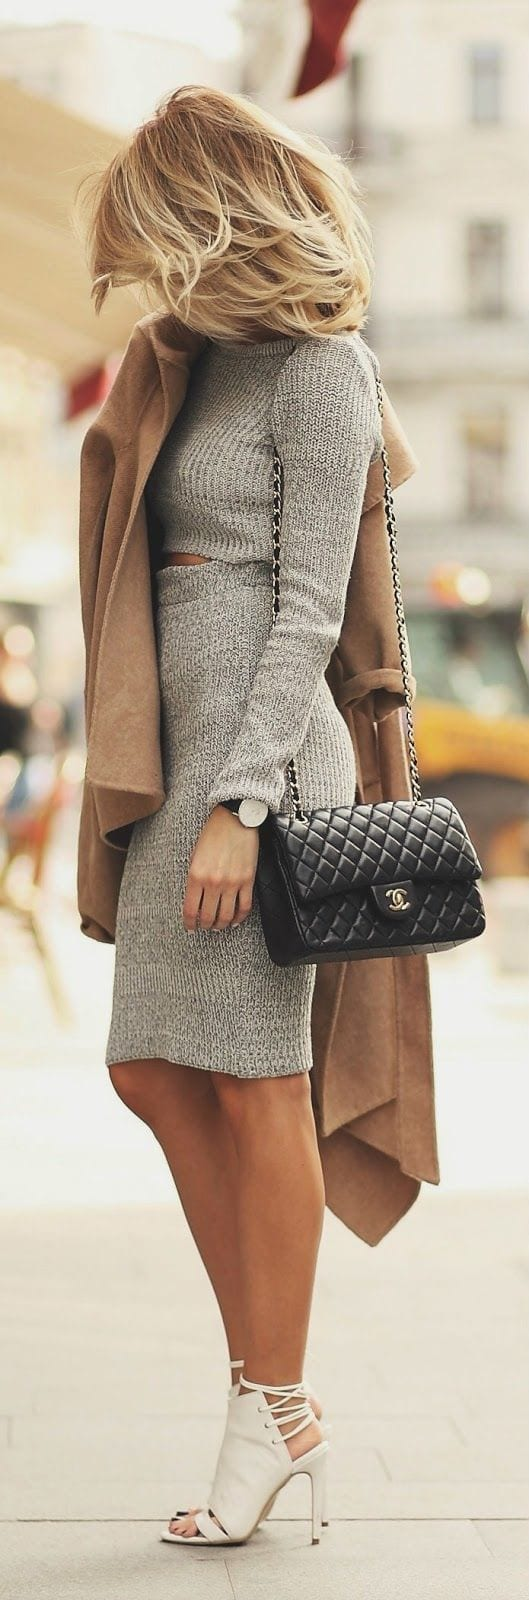 20 Cute Minimalist Outfits for Winters-Minimal Fashion Style